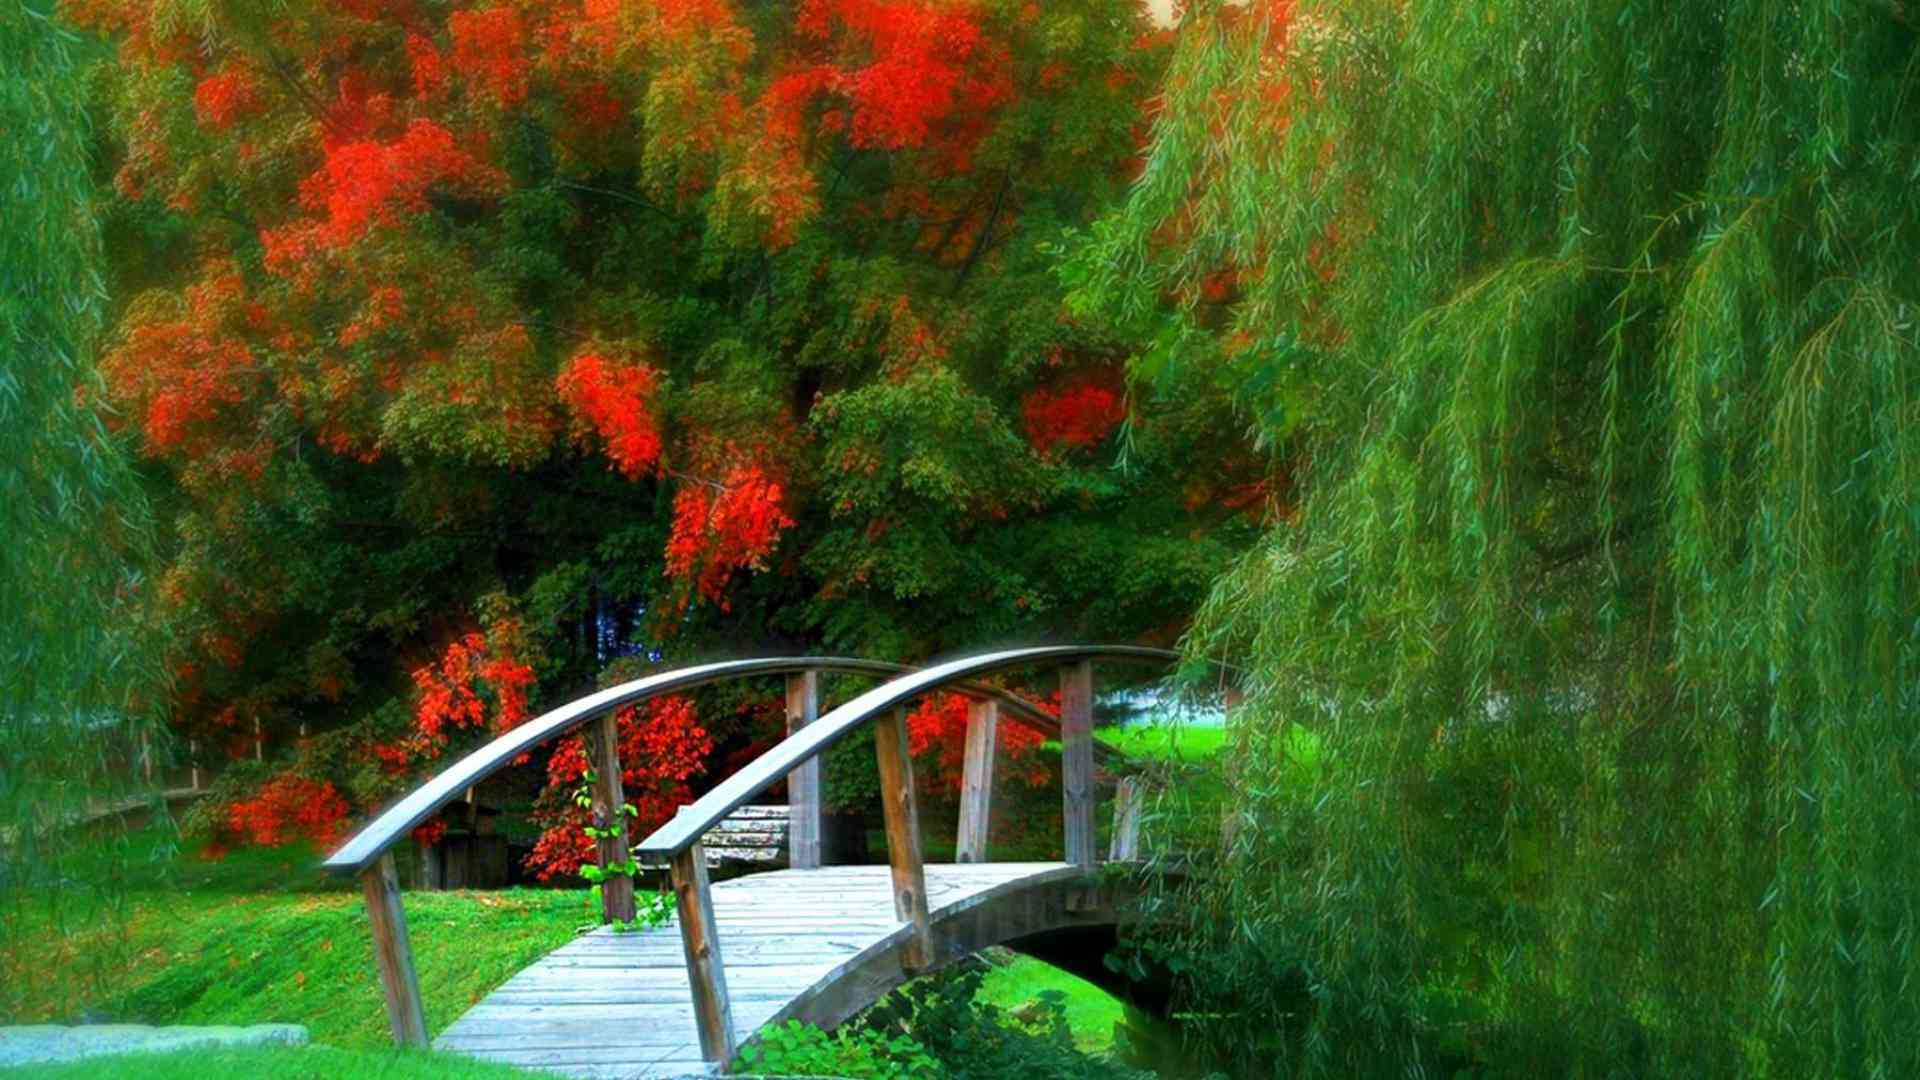 Free autumn wallpaper featuring a bridge by fall trees with colorful red flowers.